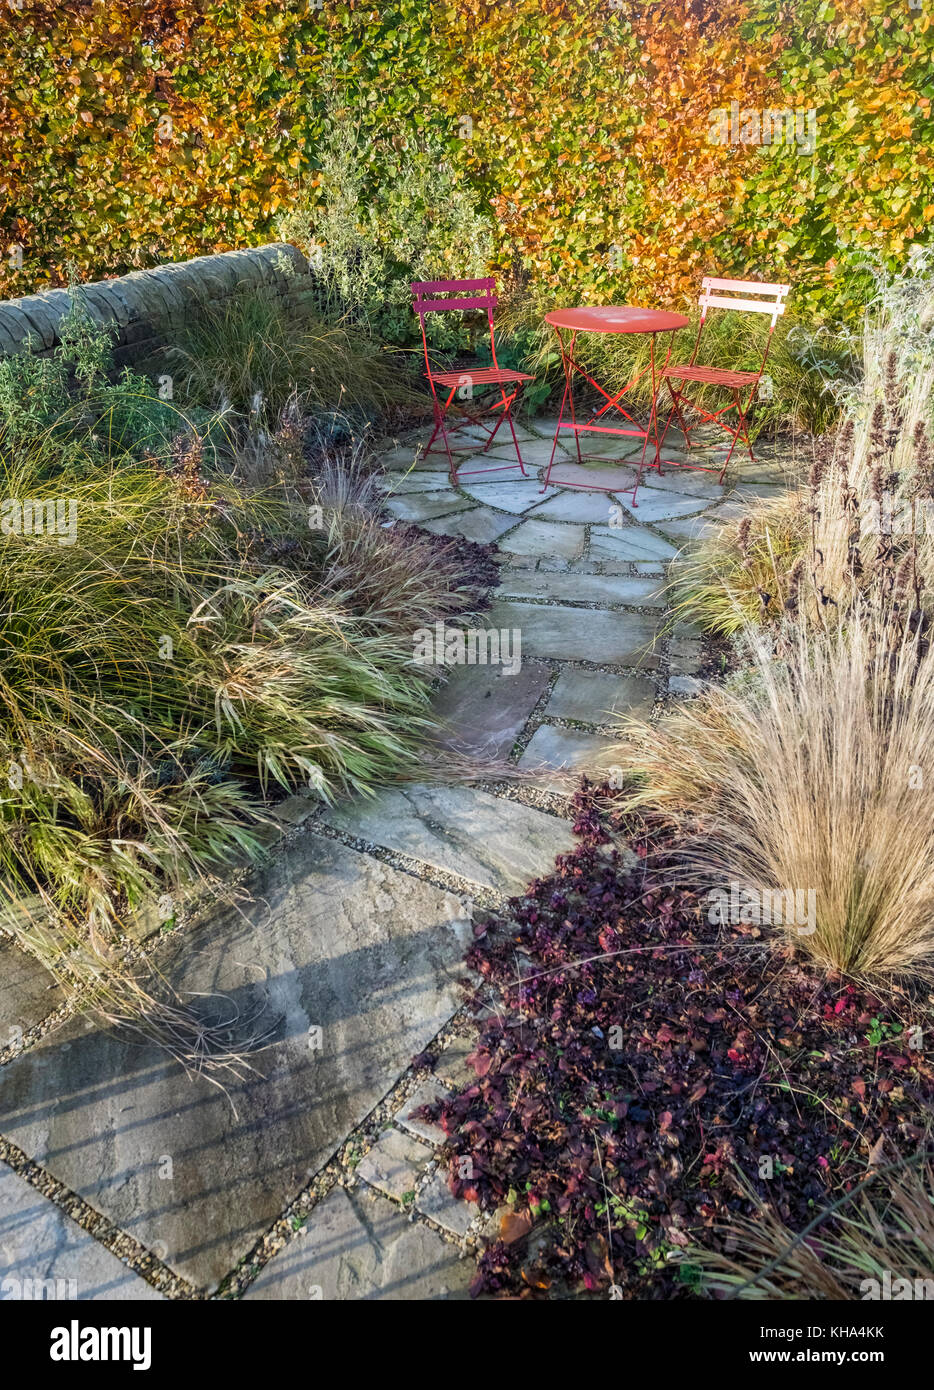 Small garden patio area with paving slabs, dining table and chairs, and autumn colour plants foliage, England, UK Stock Photo